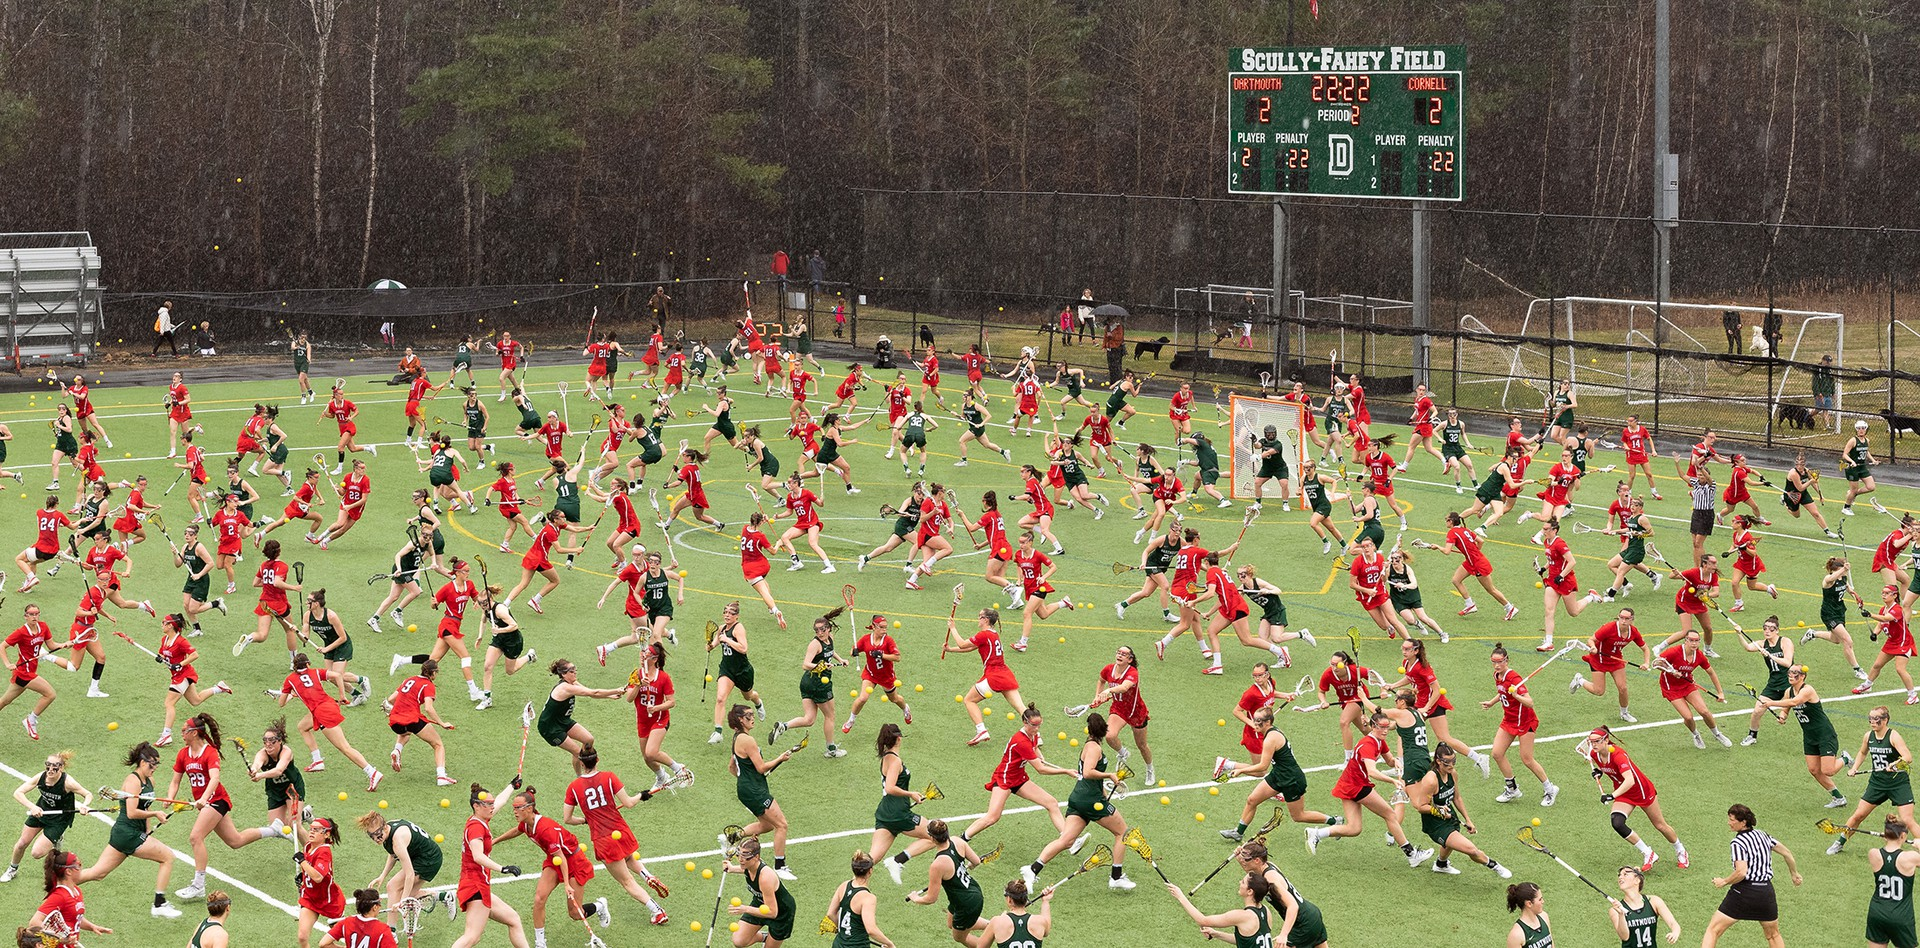 photo illustration of overcrowded women's lacrosse field